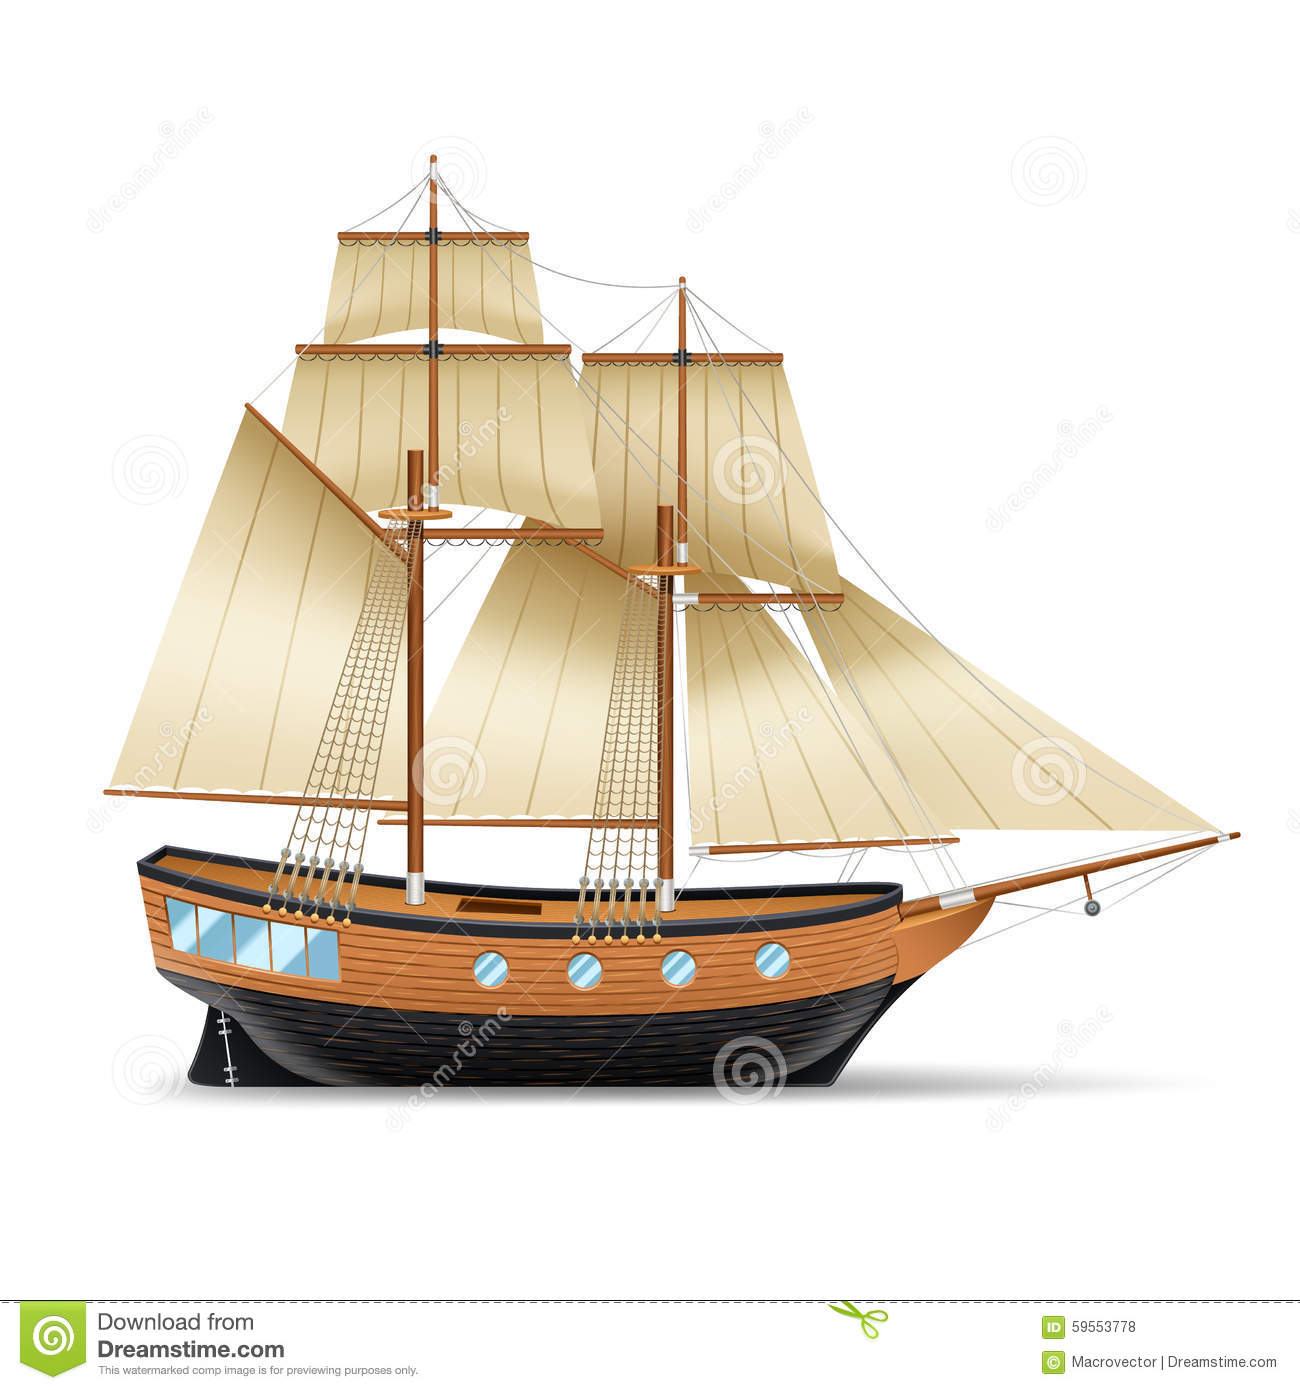 Sailing Ship Illustration Stock Vector - Image: 59553778